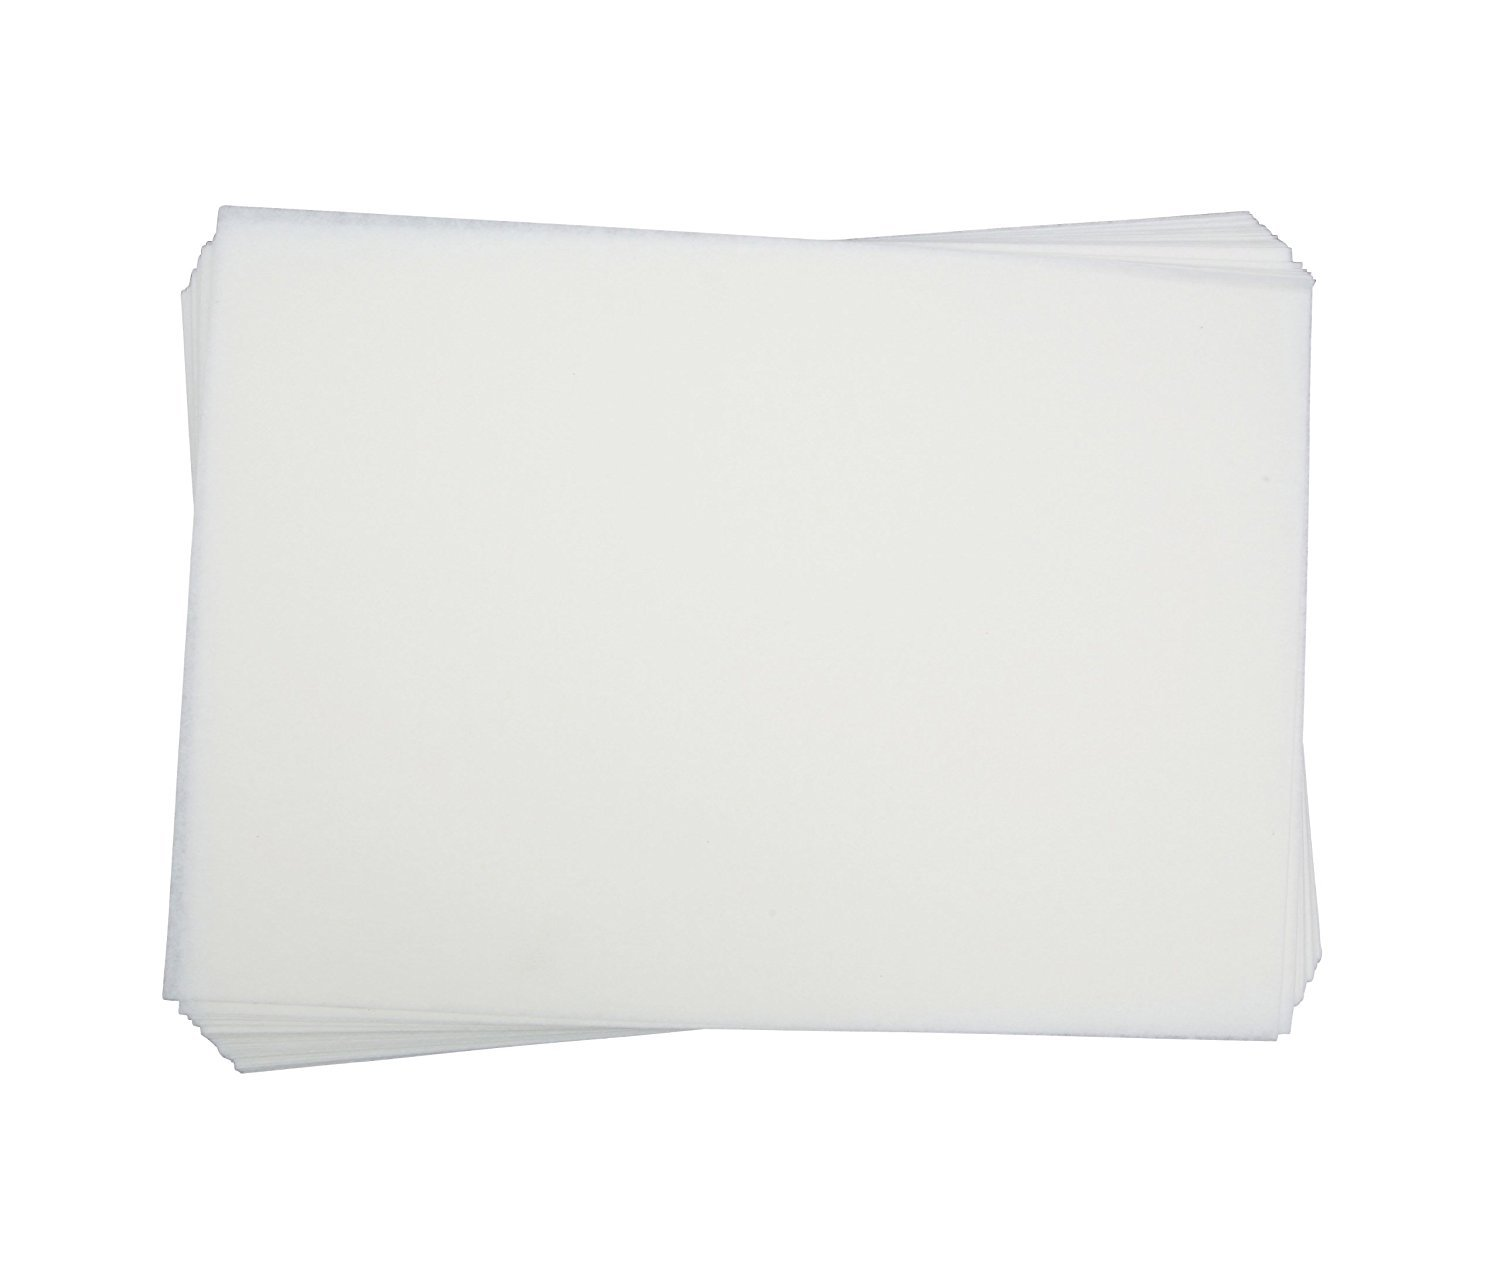 Dean S1038 Fryer Oil Filter Paper